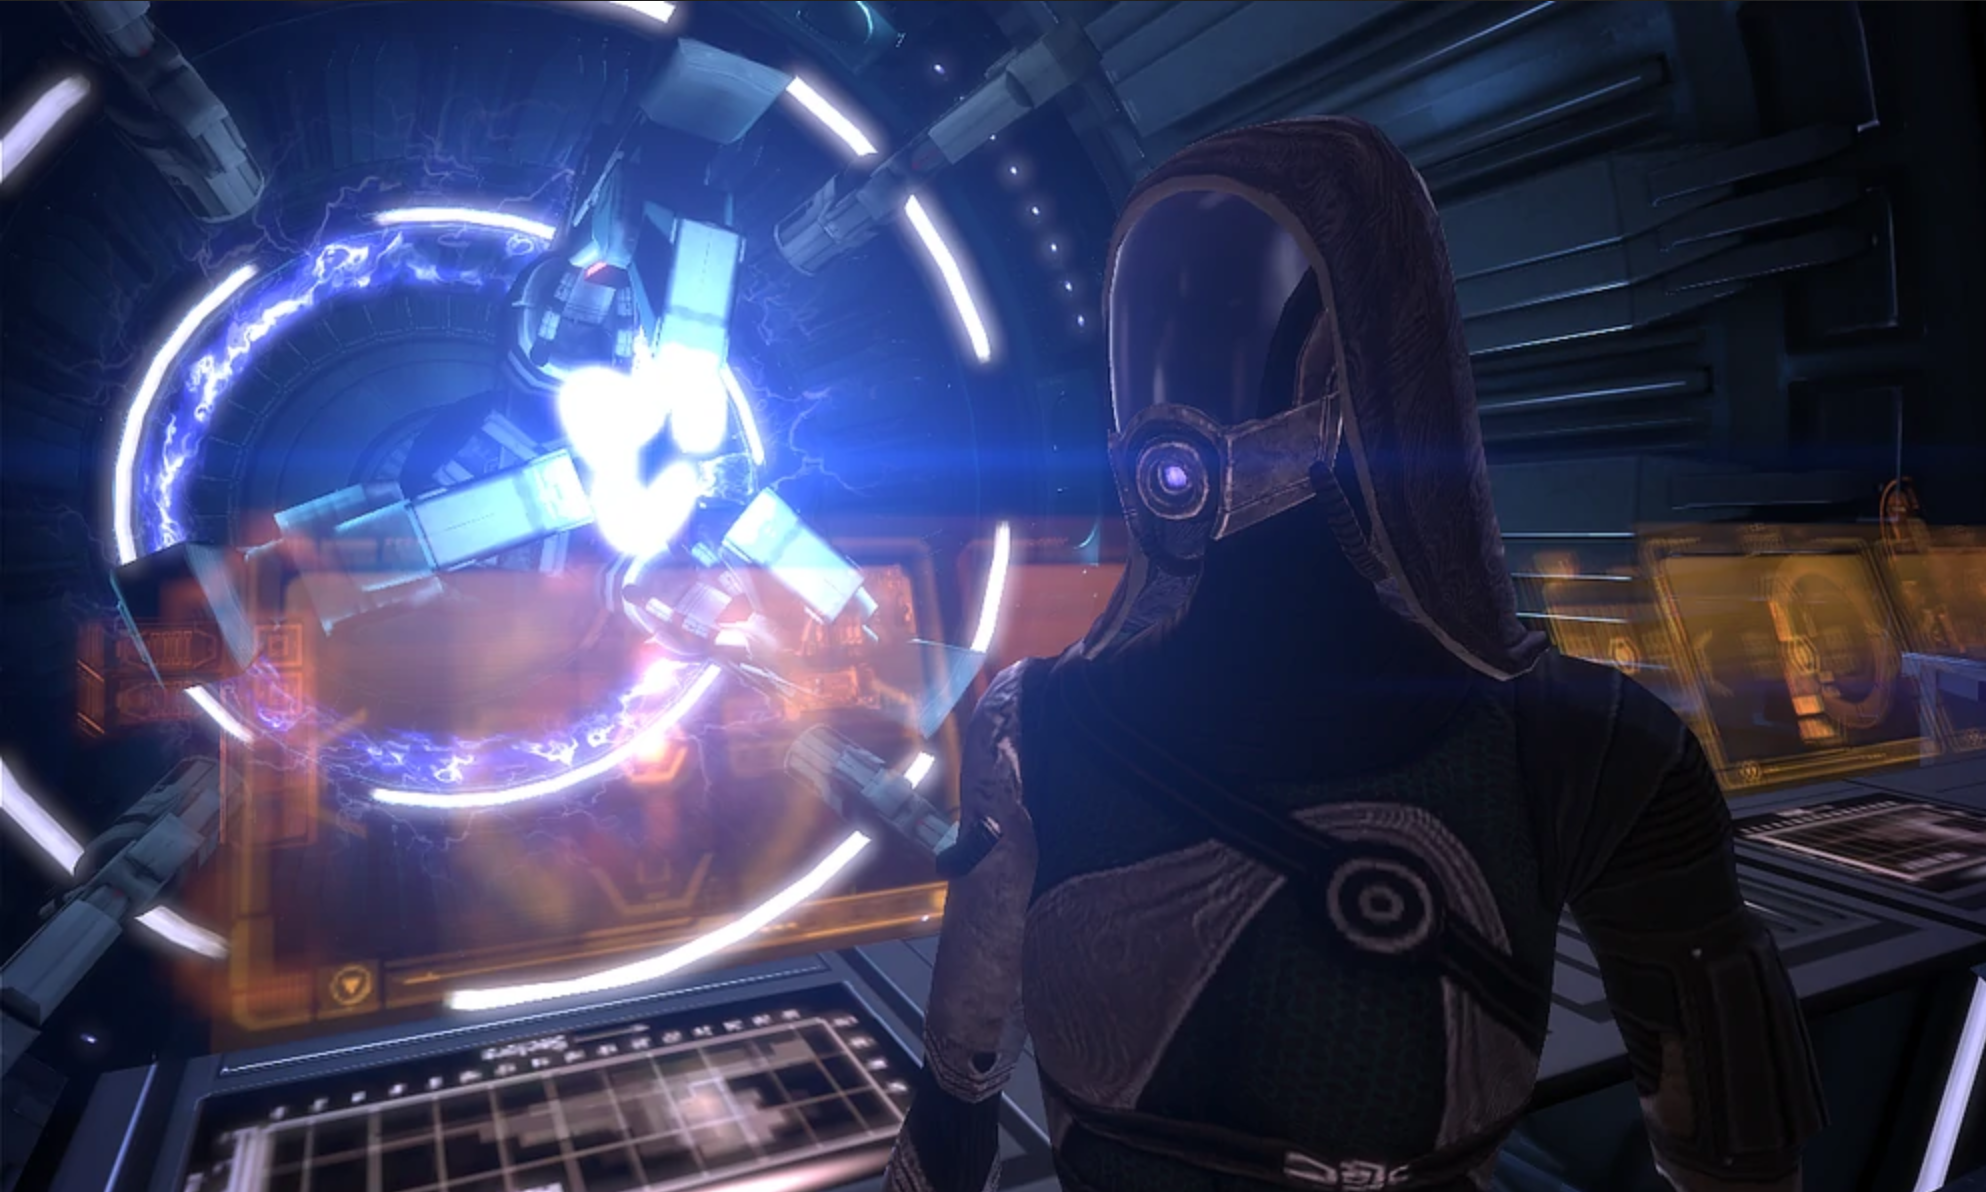 A screenshot of Tali helping out in the Normandy's mass effect core (engine room).